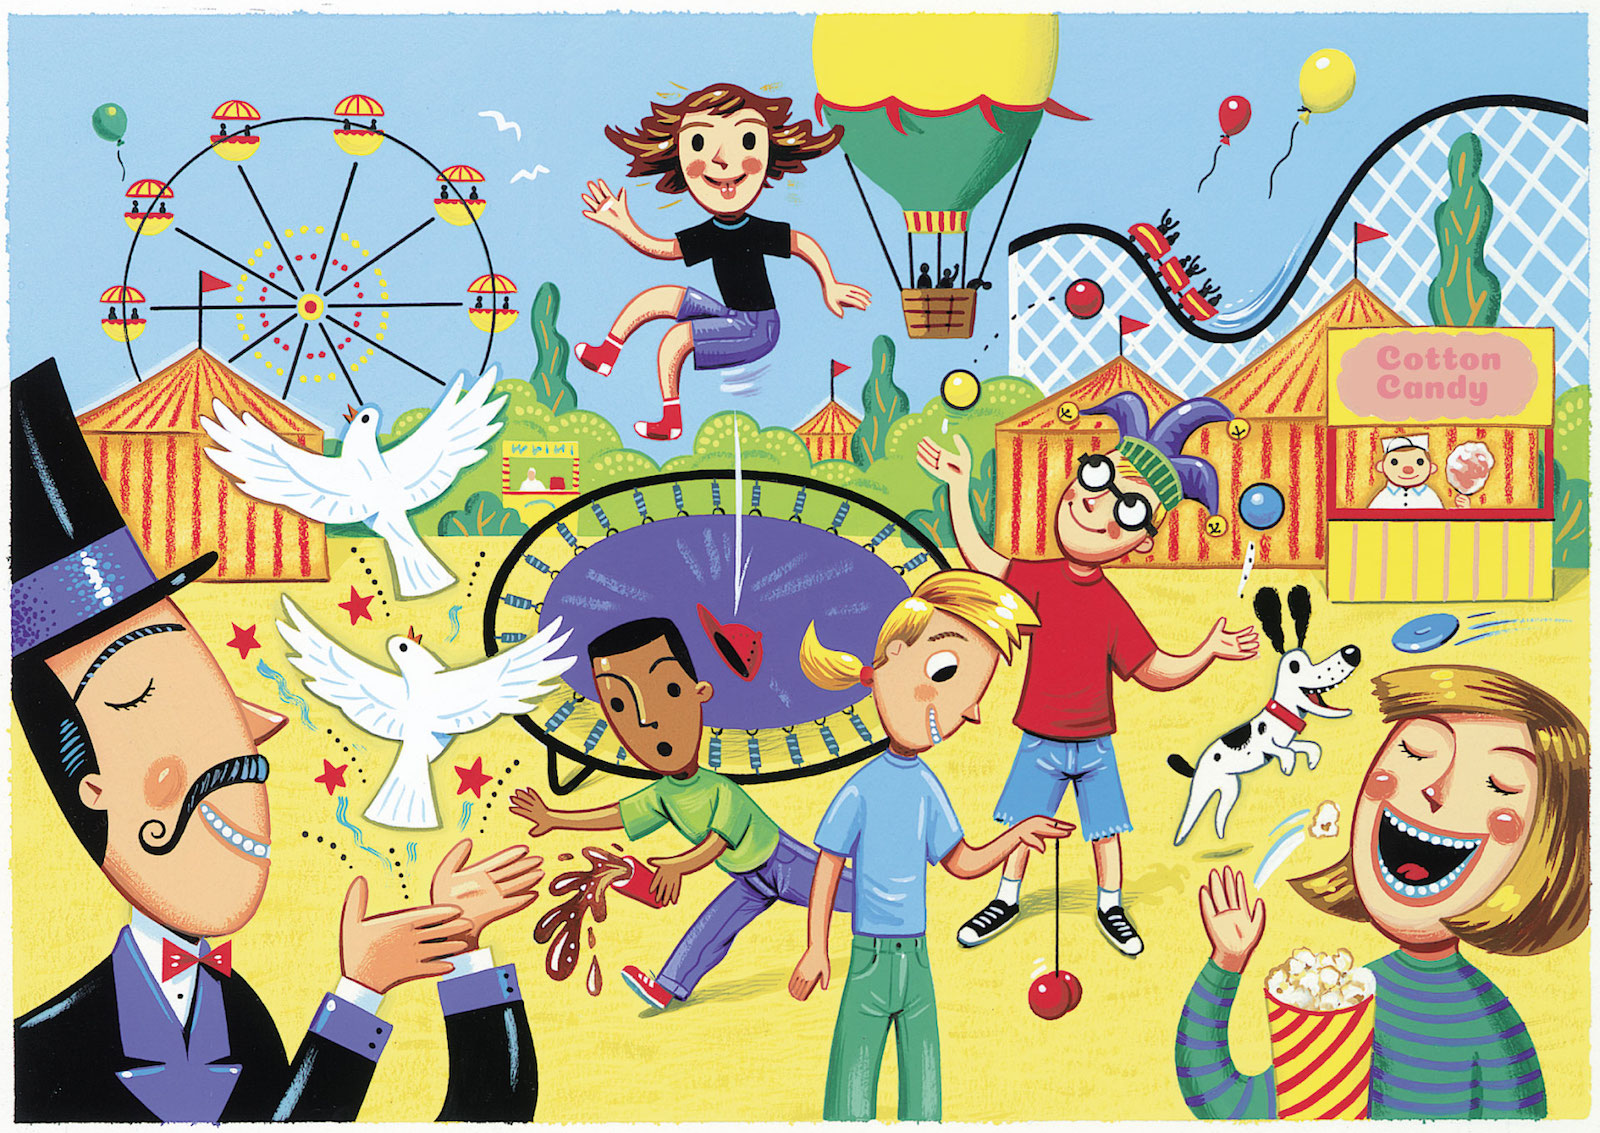 circus illustration with a rollercoaster, ferris wheel, flying hot air ballon, magician letting doves fly, and child on trampoline